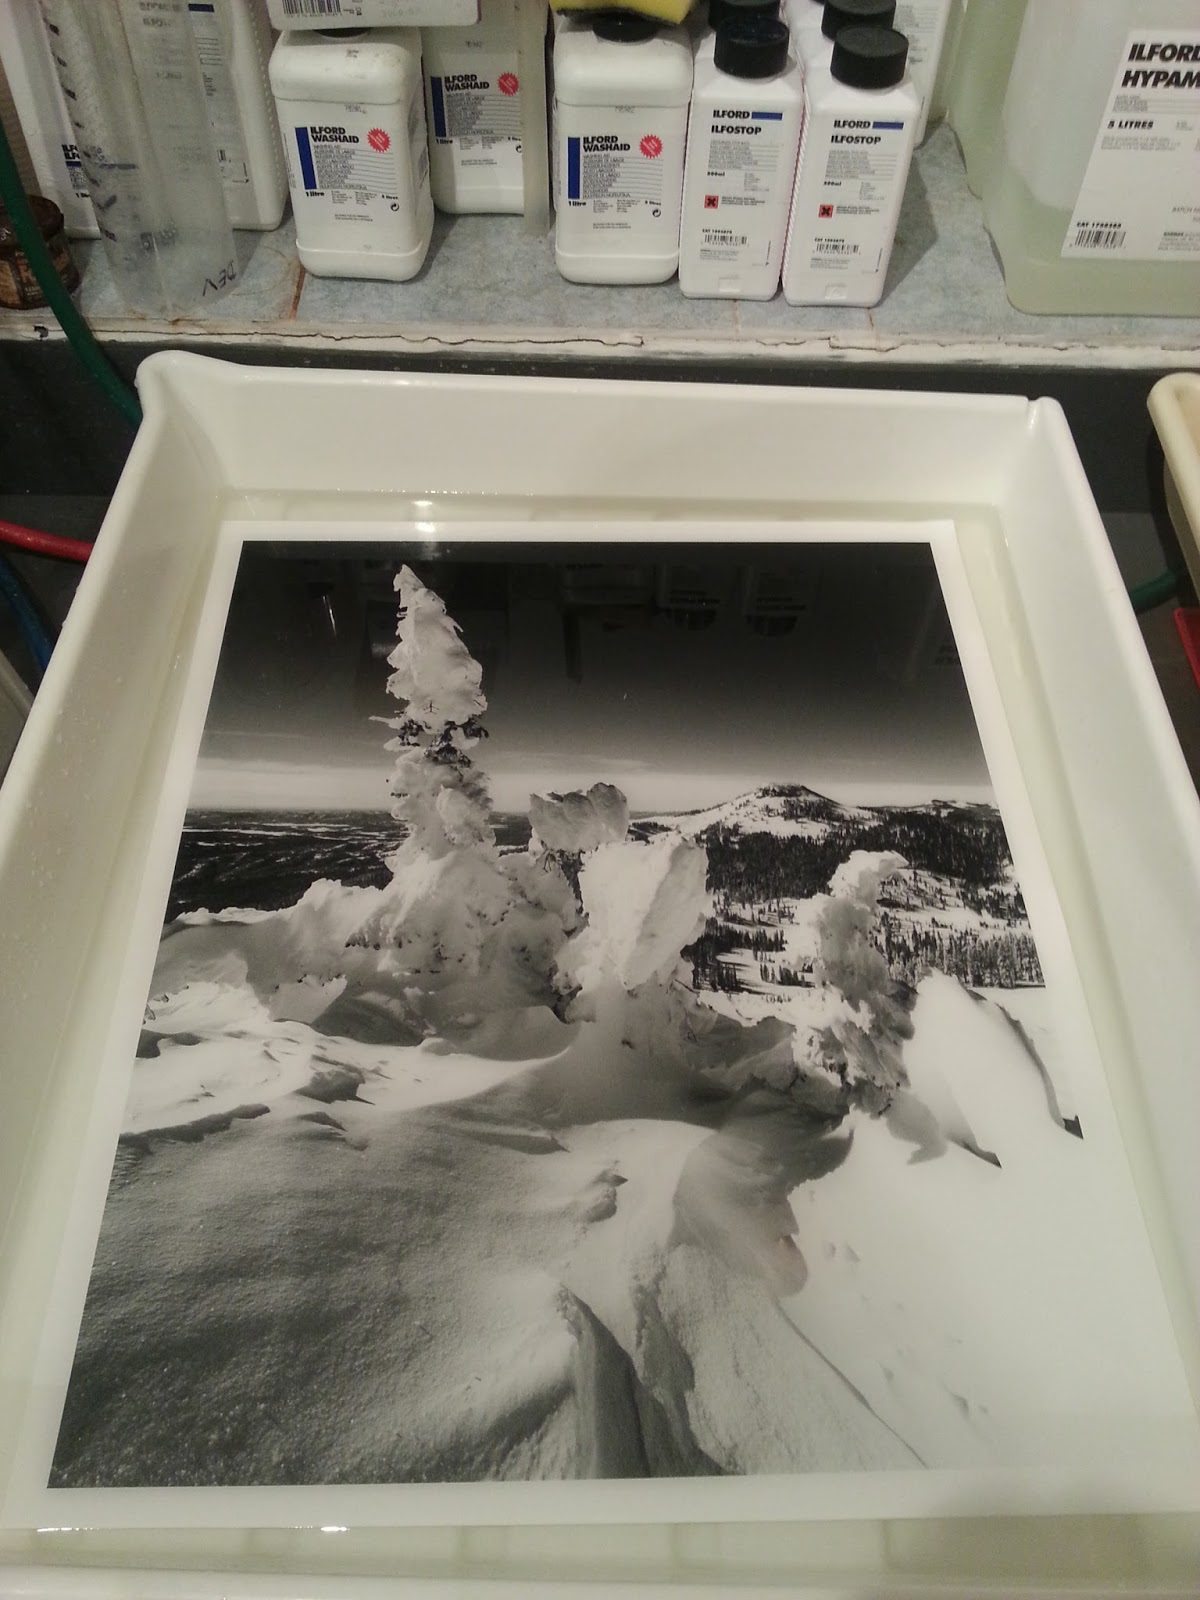 @monodave · 22h @ILFORDPhoto #ilfordphoto #fridayfavourites Here's a 24x20 inch #fbprint in the fixer dish in my darkroom. The print was used on the Ilford stand at Photokina 2014 in Cologne and was printed on the new Ilford Multigrade Cooltone FB glossy paper. Wolf Creek Colorado